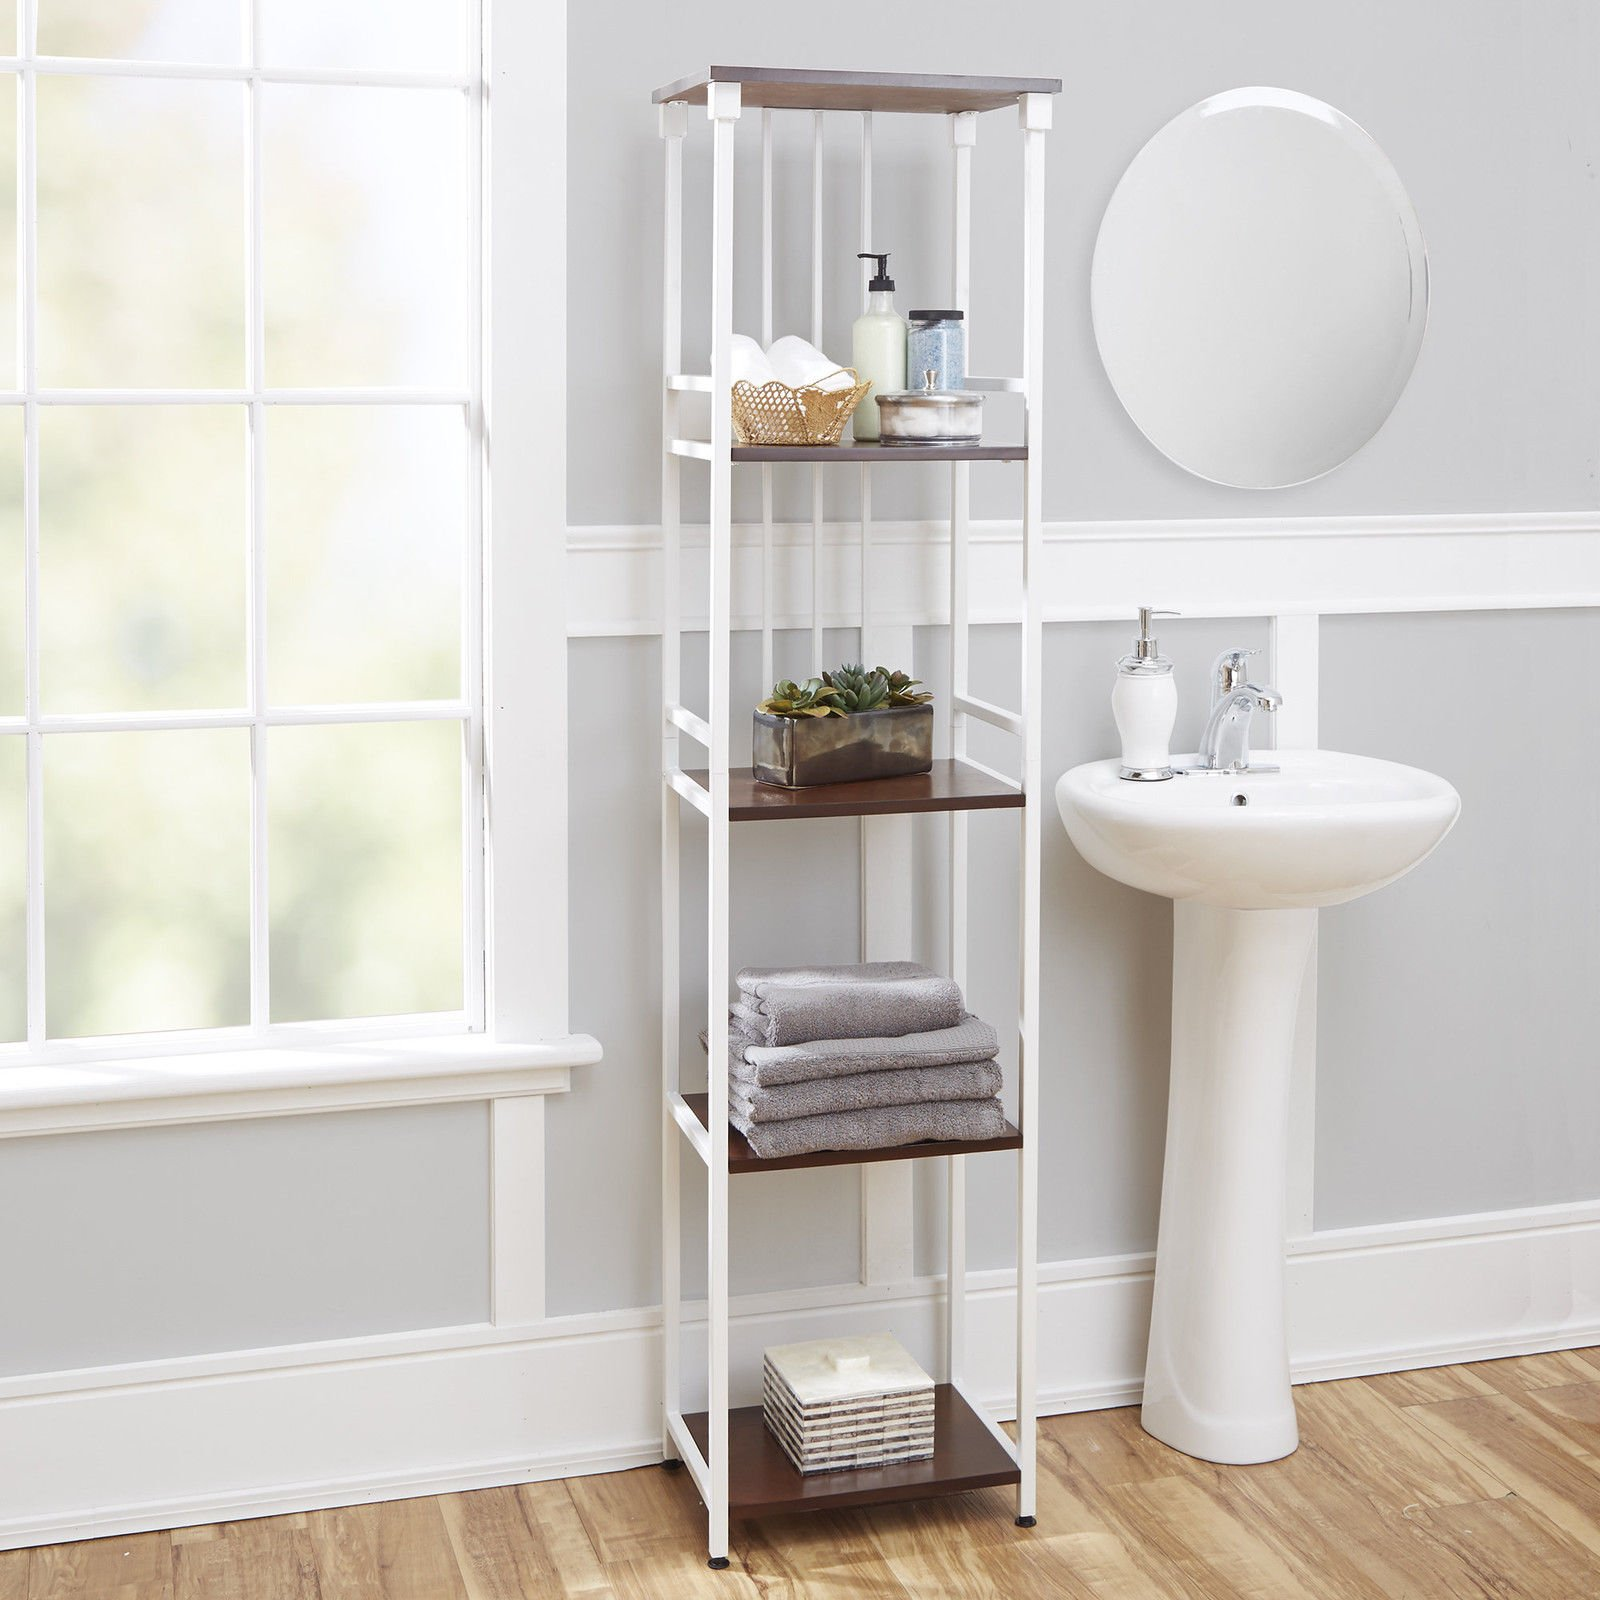 Marvelous Looking Mixed Material Bathroom Collection 5-Tier Linen Shelf Organize Your Bathroom With This Space Saving Unit